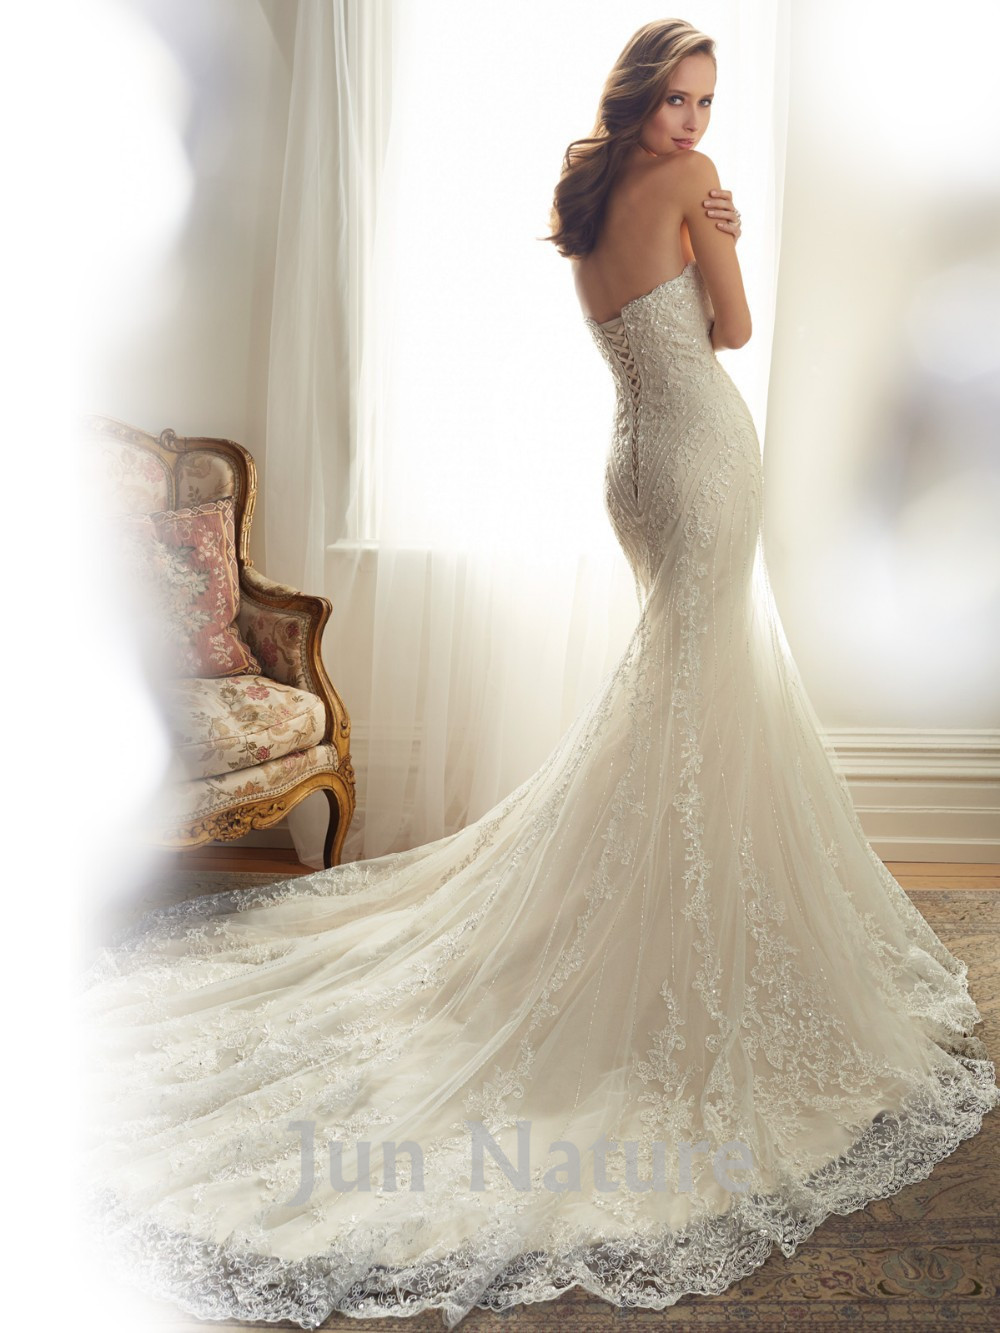 long wedding dresses Long Sleeve Wedding Dresses To Commemorate Your Special Day